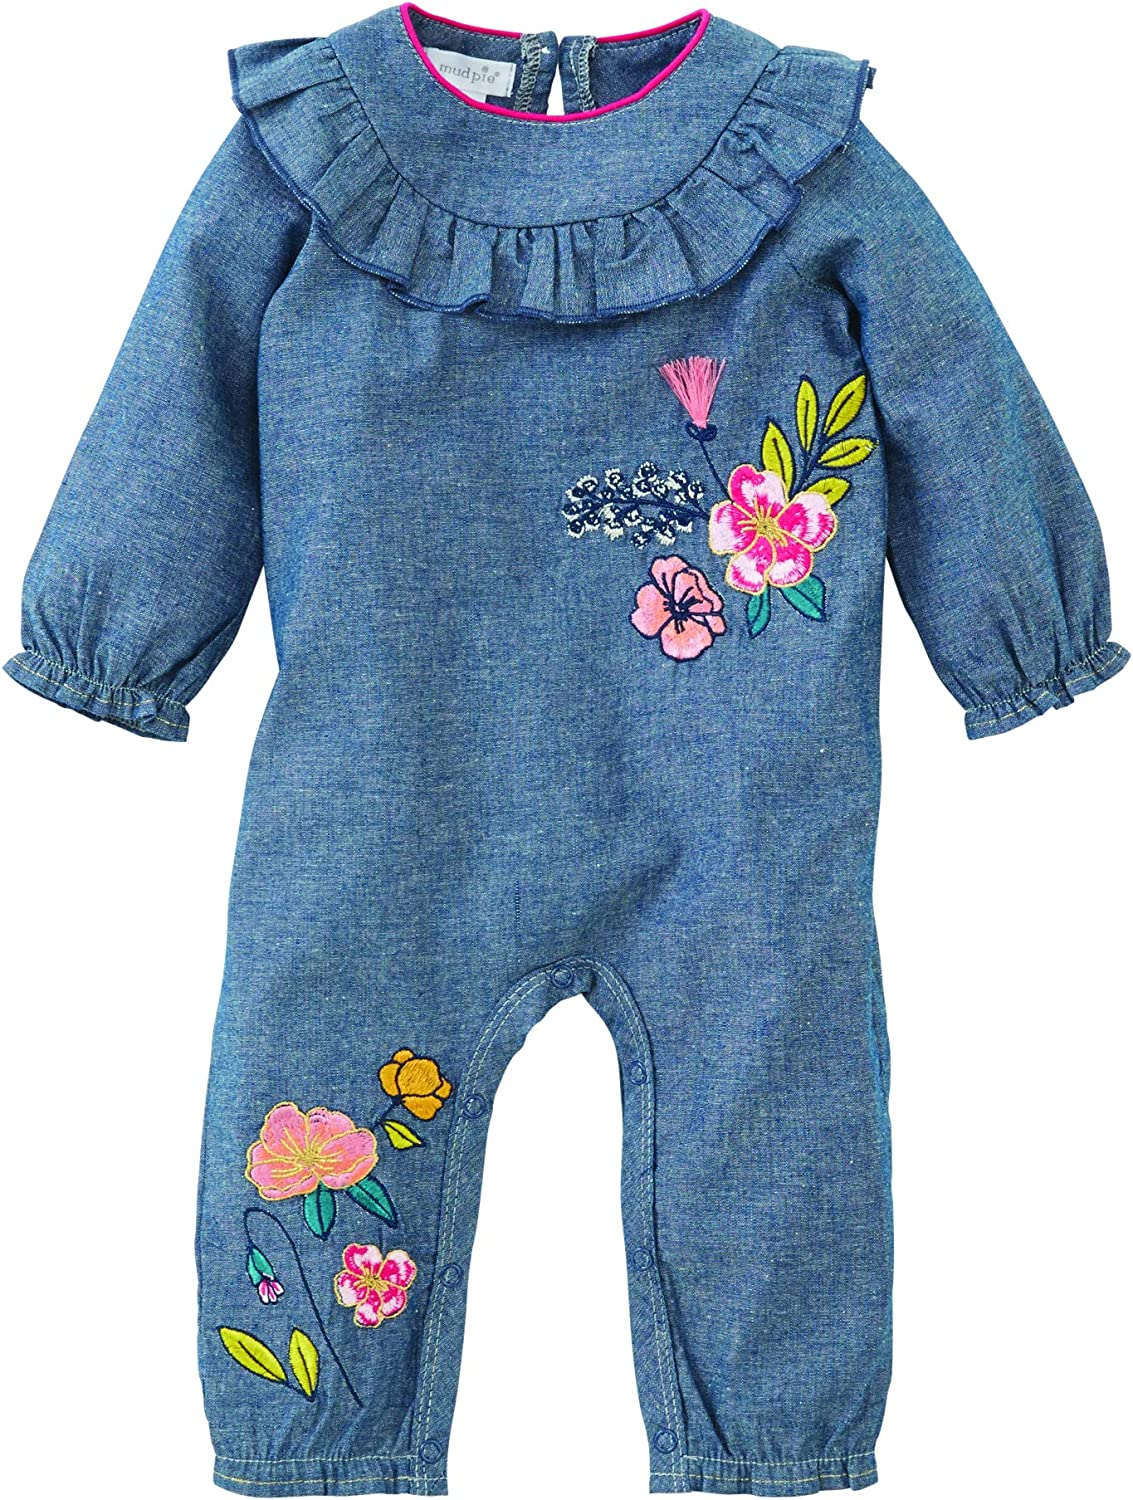 Mud Pie Fall Floral Chambray Piece Manufacturer regenerated product One Ruffle 12M Multicoloured Ranking TOP12